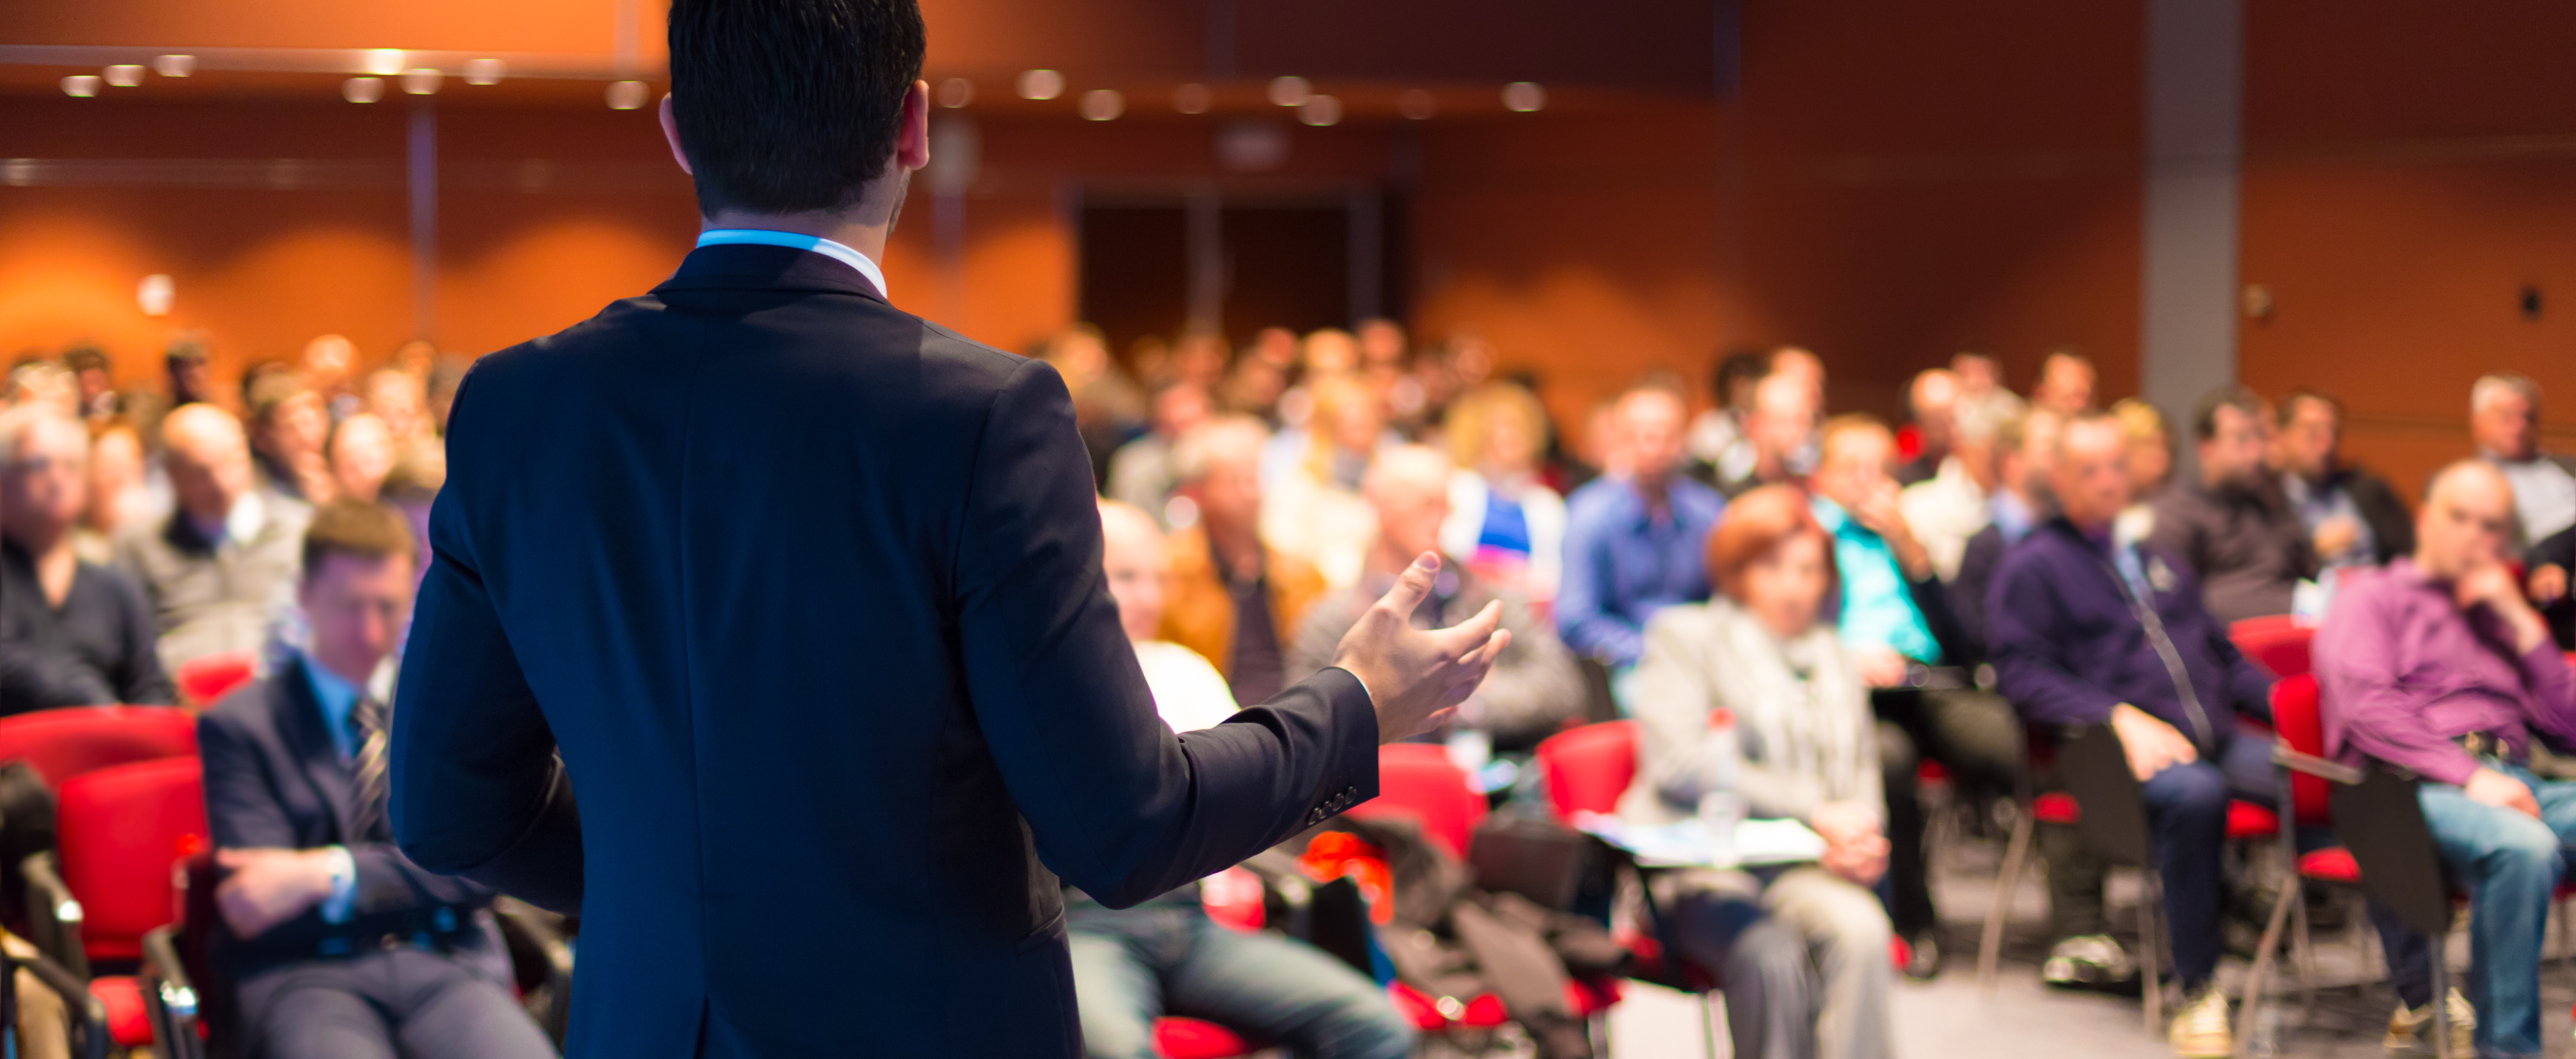 4TH ANNUAL URGENT CARE CONFERENCE: DELIVERING INTEGRATED SOLUTIONS